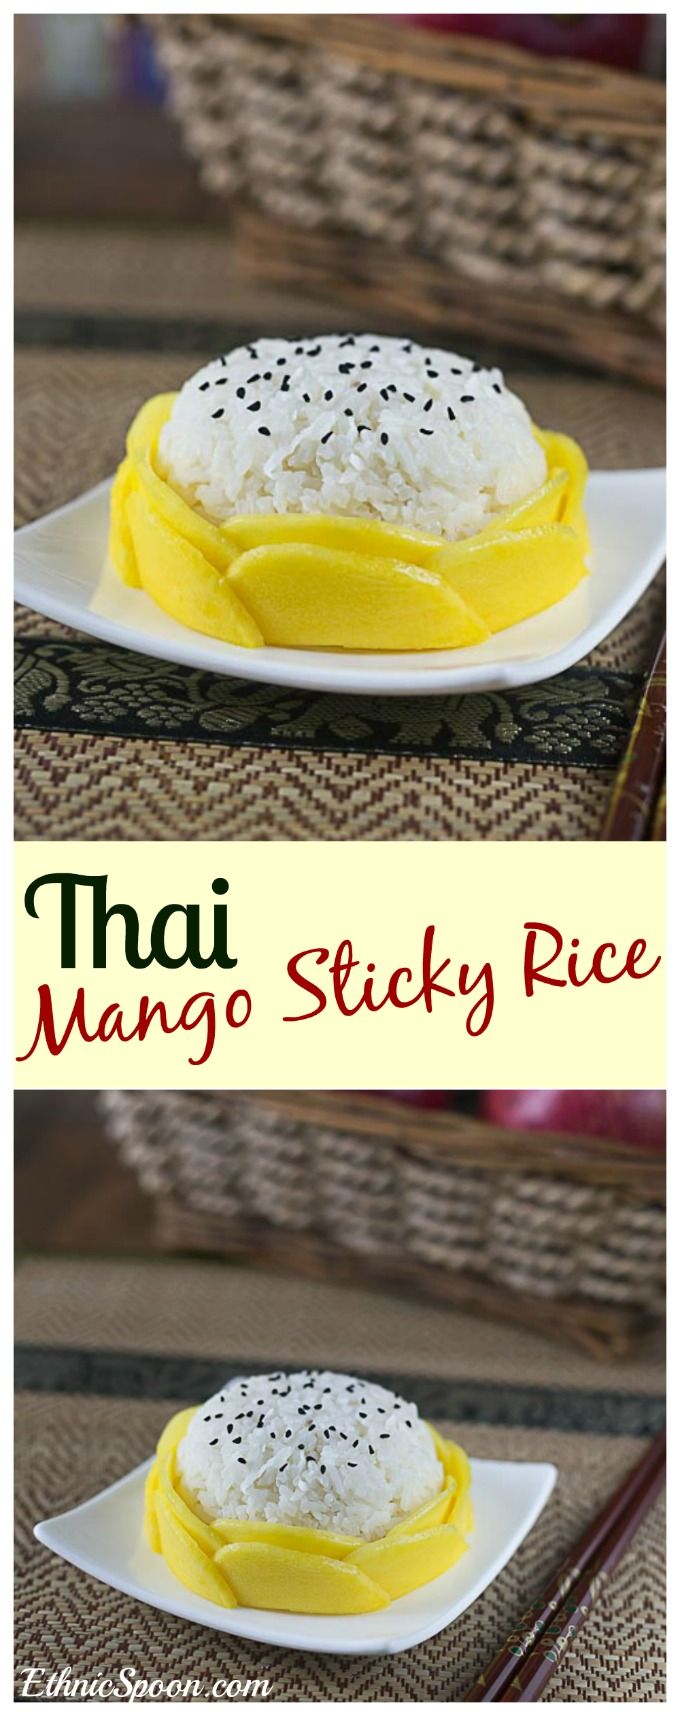 A fabulous dessert recipe from Thailand: Thai Mango sticky rice is easy, sweet and delicious. | ethnicspoon.com